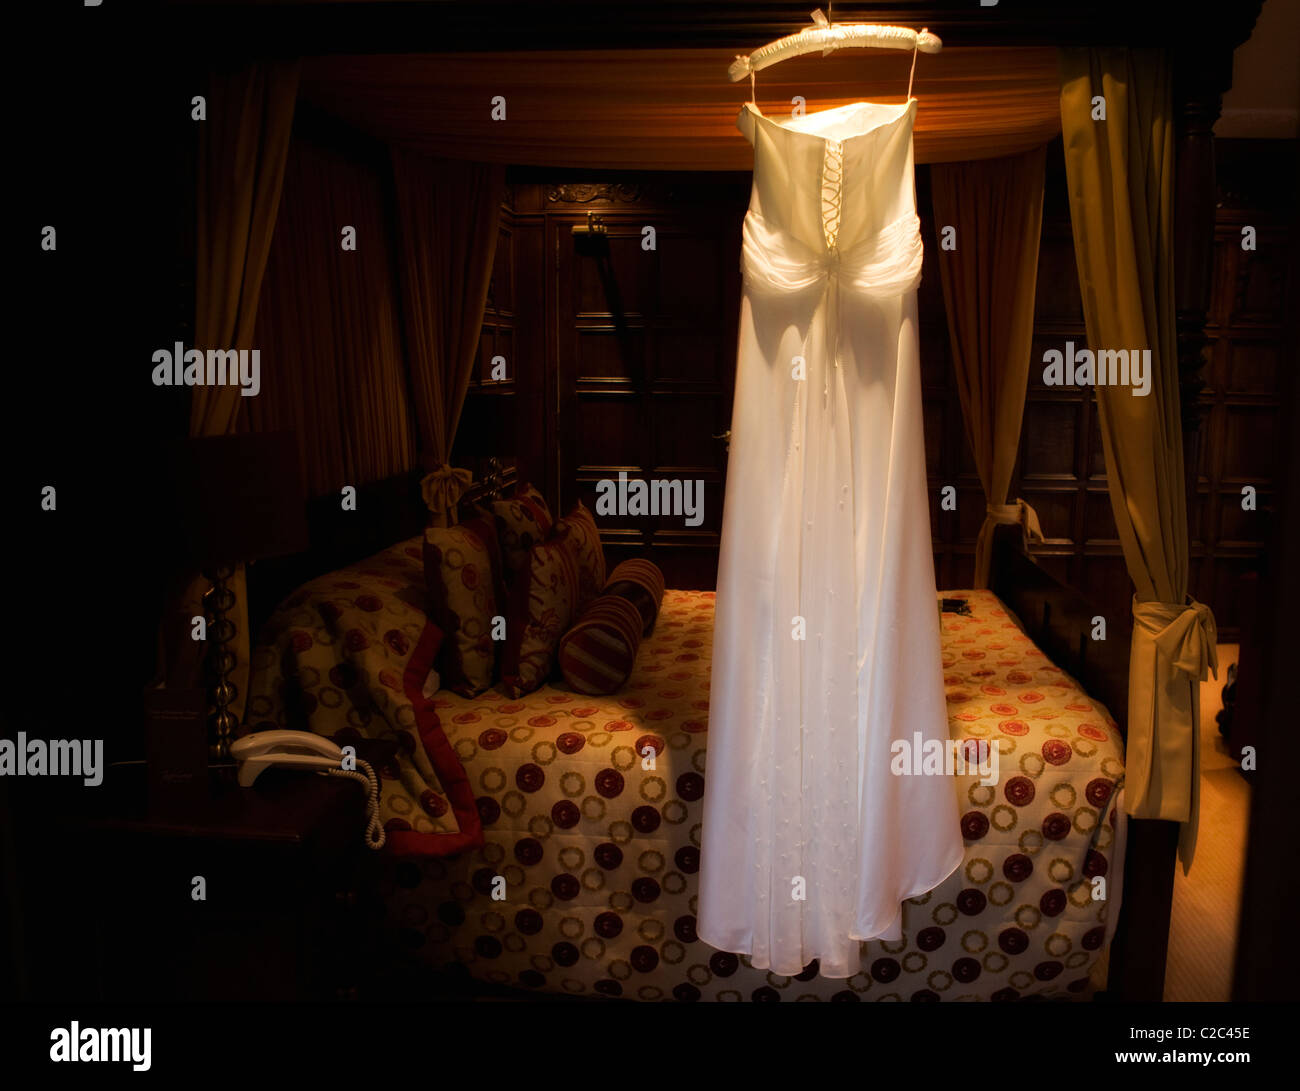 Wedding Dress on 4 poster bed - Stock Image